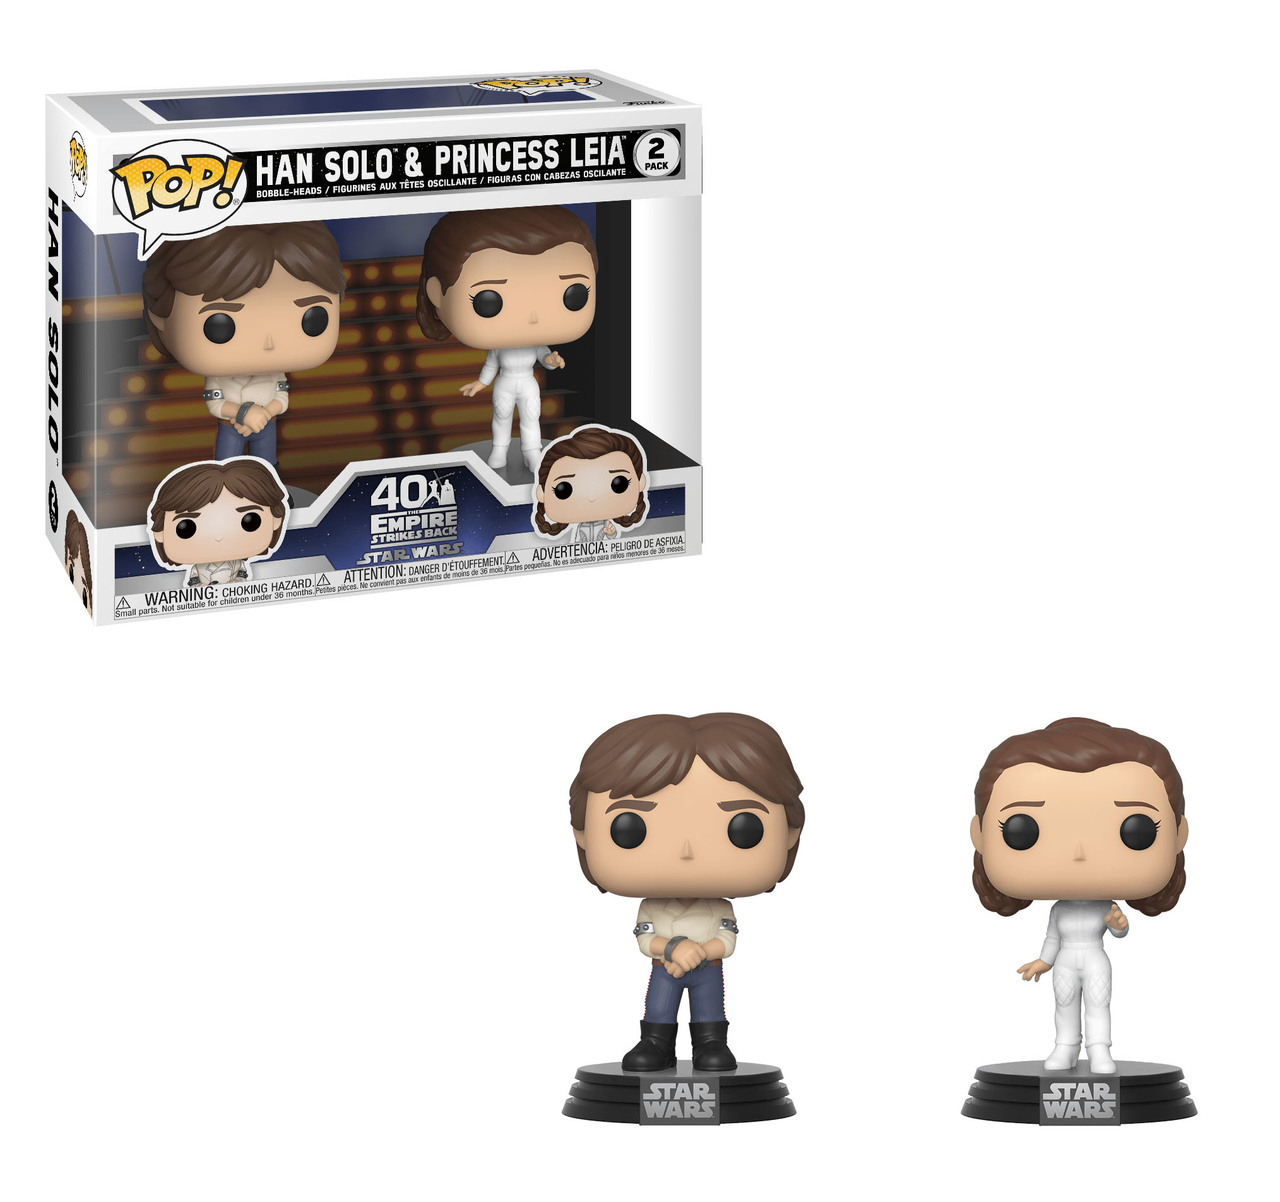 FUNKO POP HAN SOLO & PRINCESS LEIA 2 PACK STAR WARS HARRISON FORD CARRIE FISHER